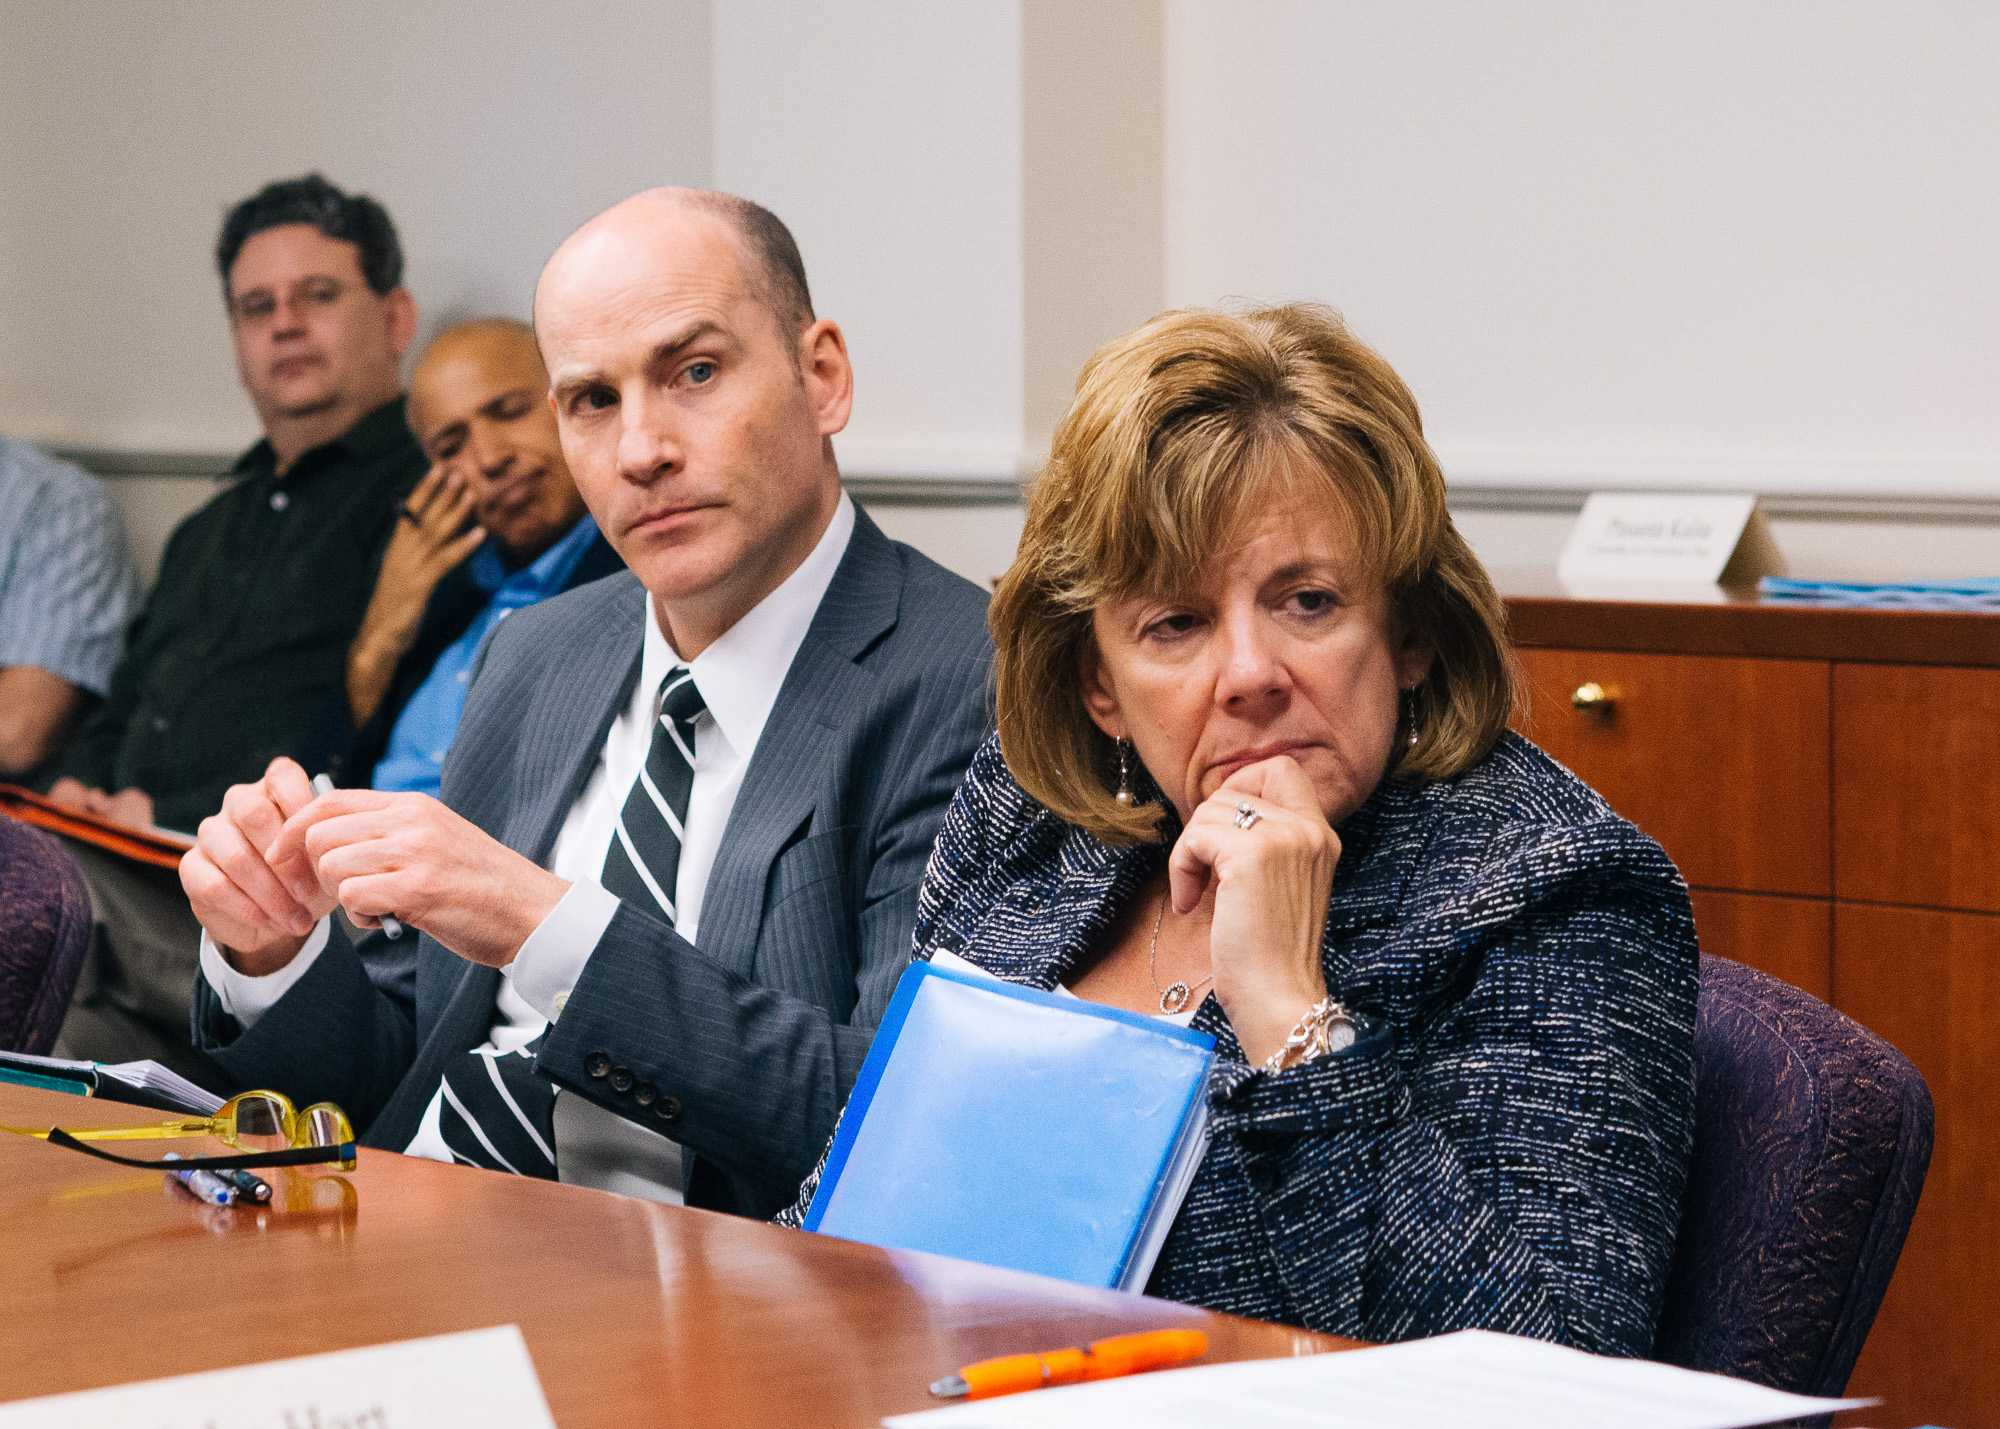 Interim Vice Chancellor Edward Feser (left) and Interim Chancellor Barbara Wilson (right) listen during the SEC meeting in Urbana, IL on Monday, April 25, 2016.